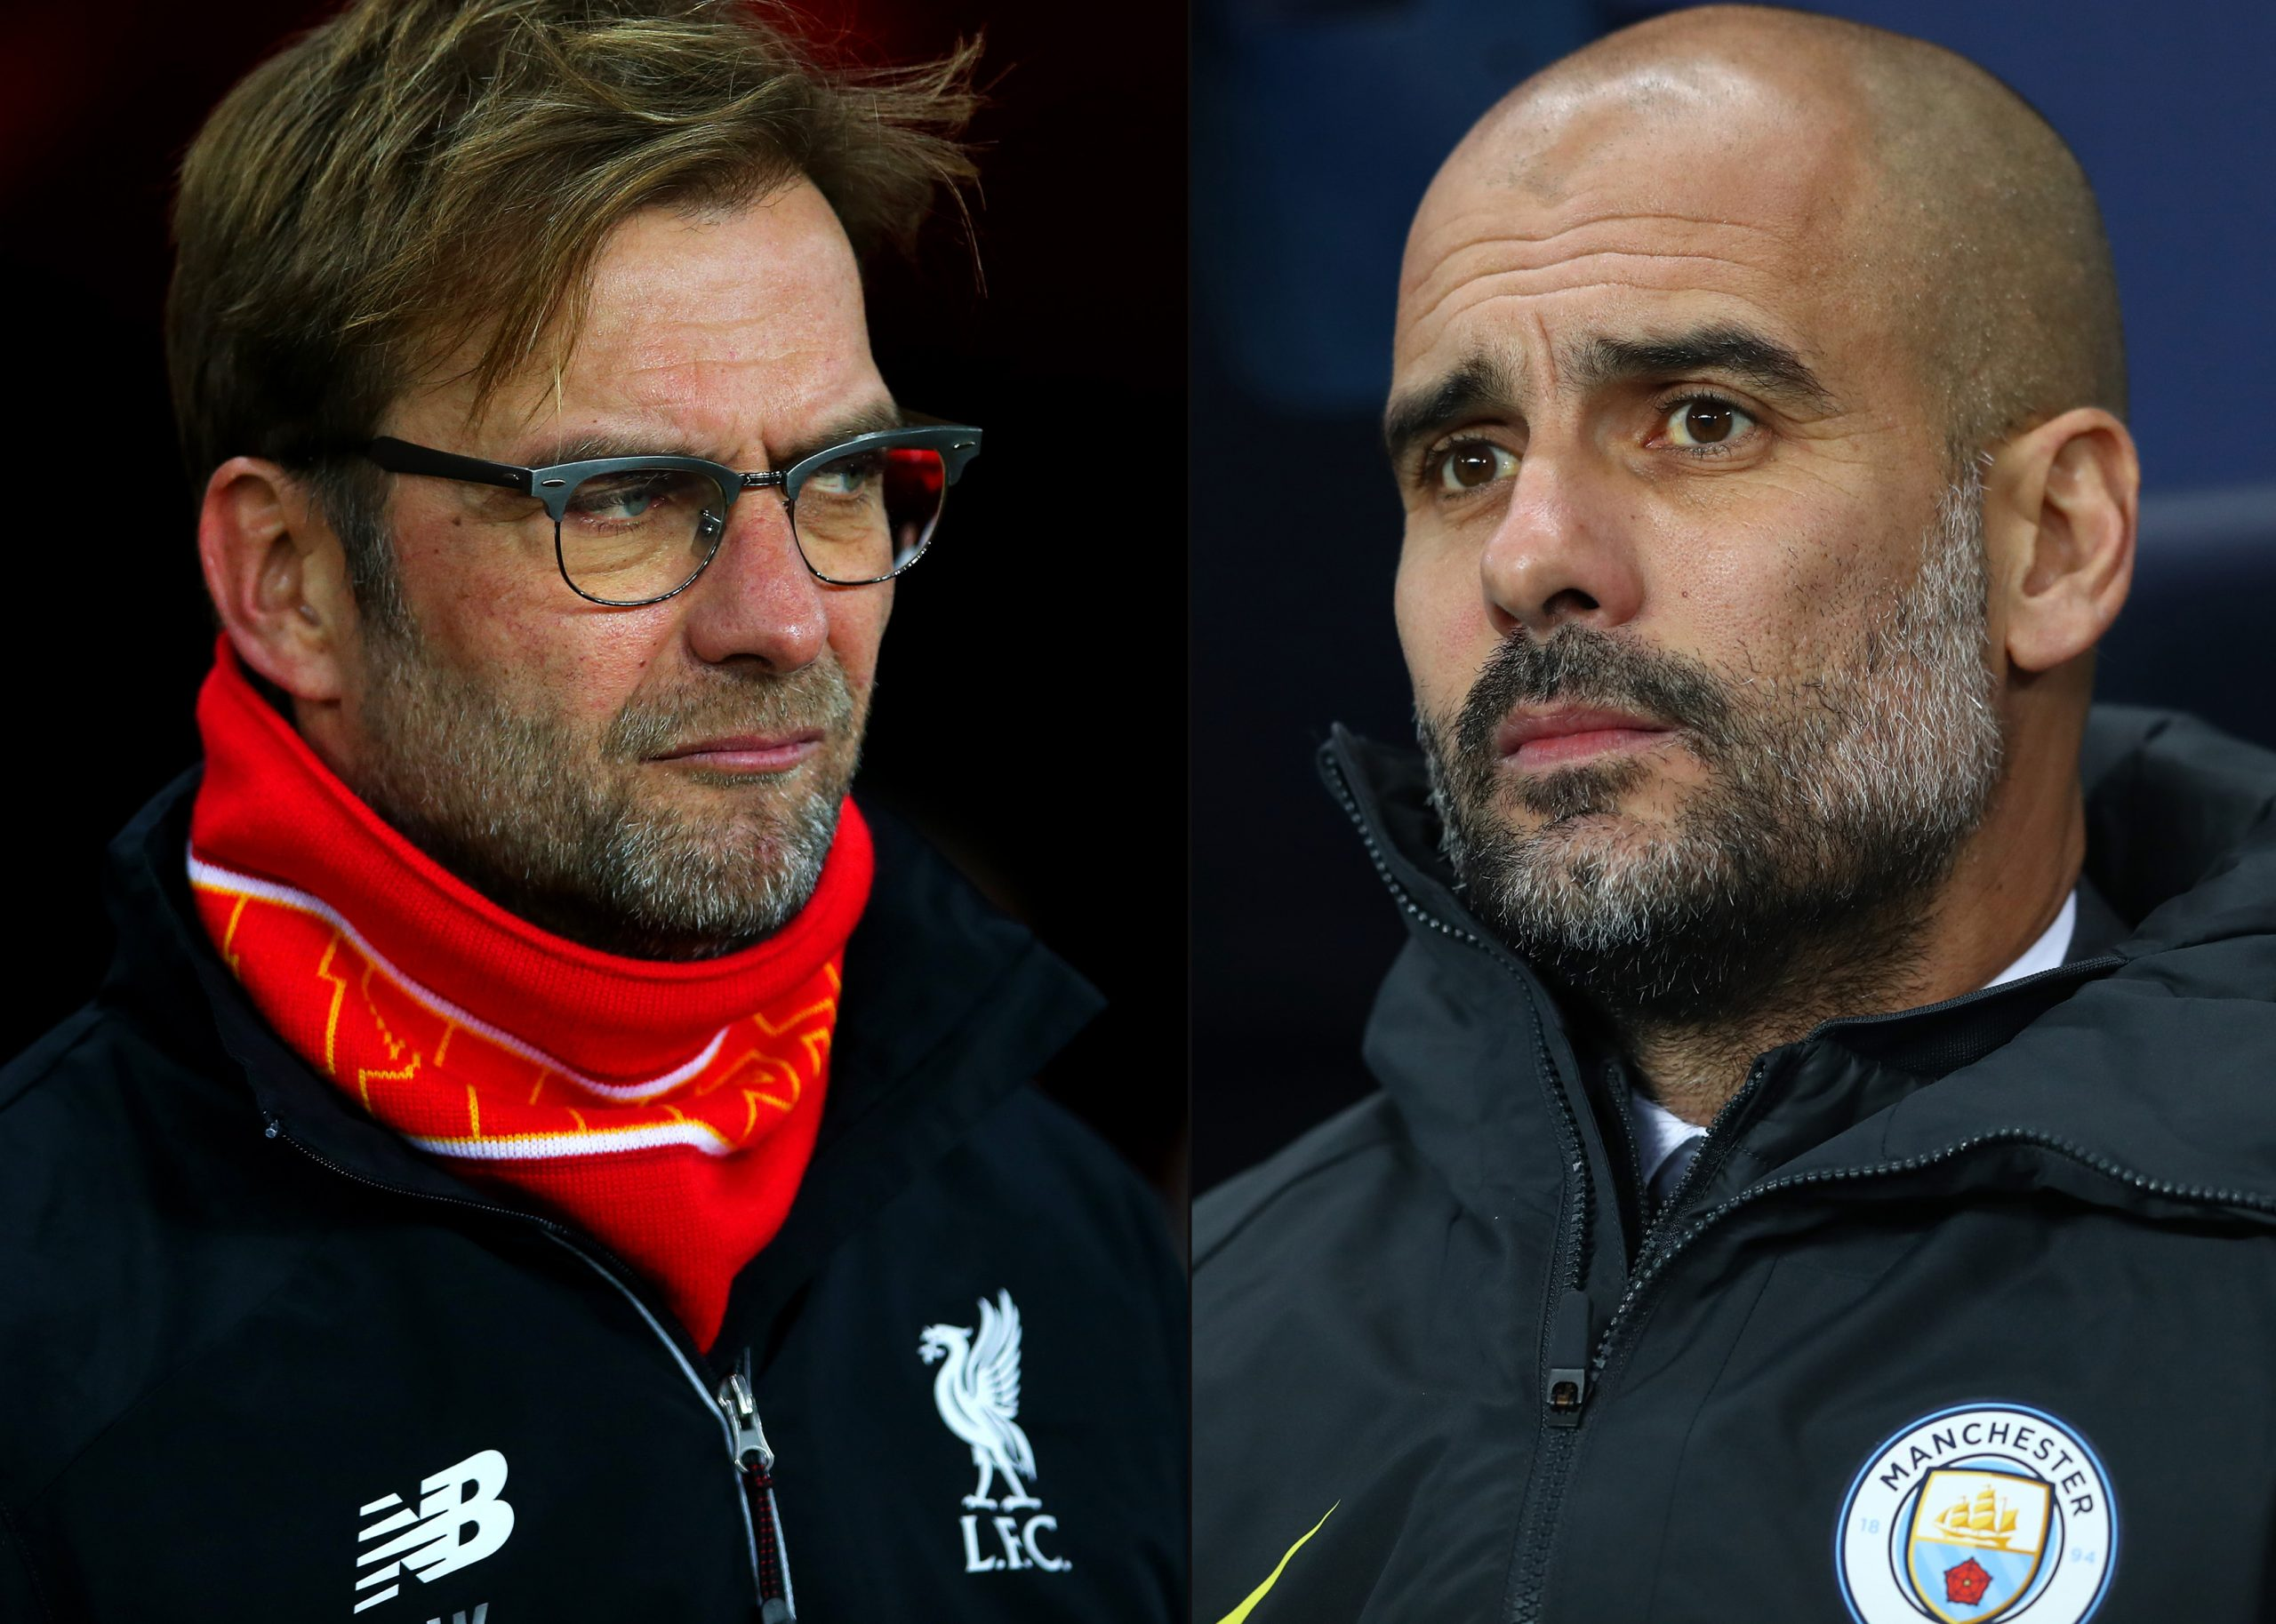 Liverpool paid £1m settlement to Manchester City after allegedly spying on their scouting database